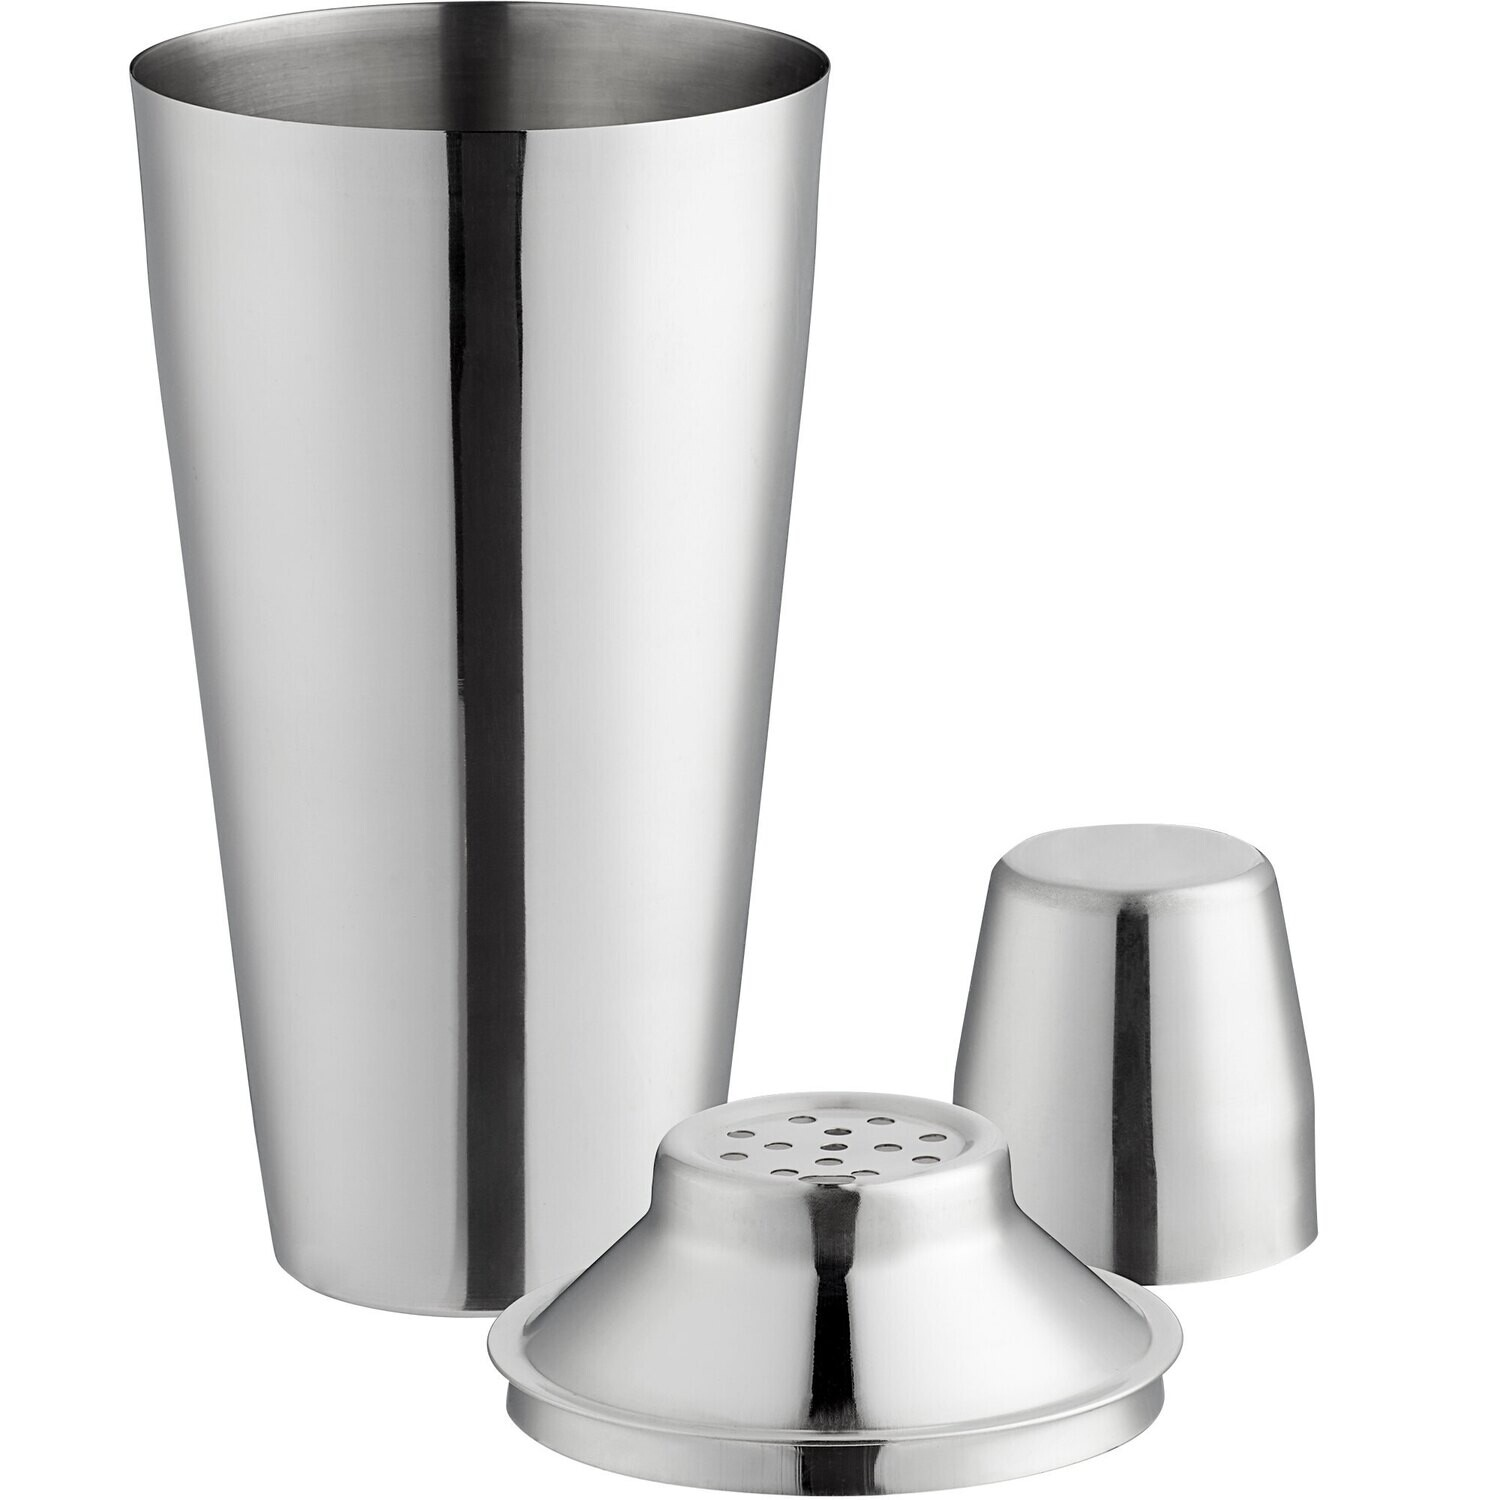 3-Piece Stainless Steel 28 oz. Cocktail Shaker